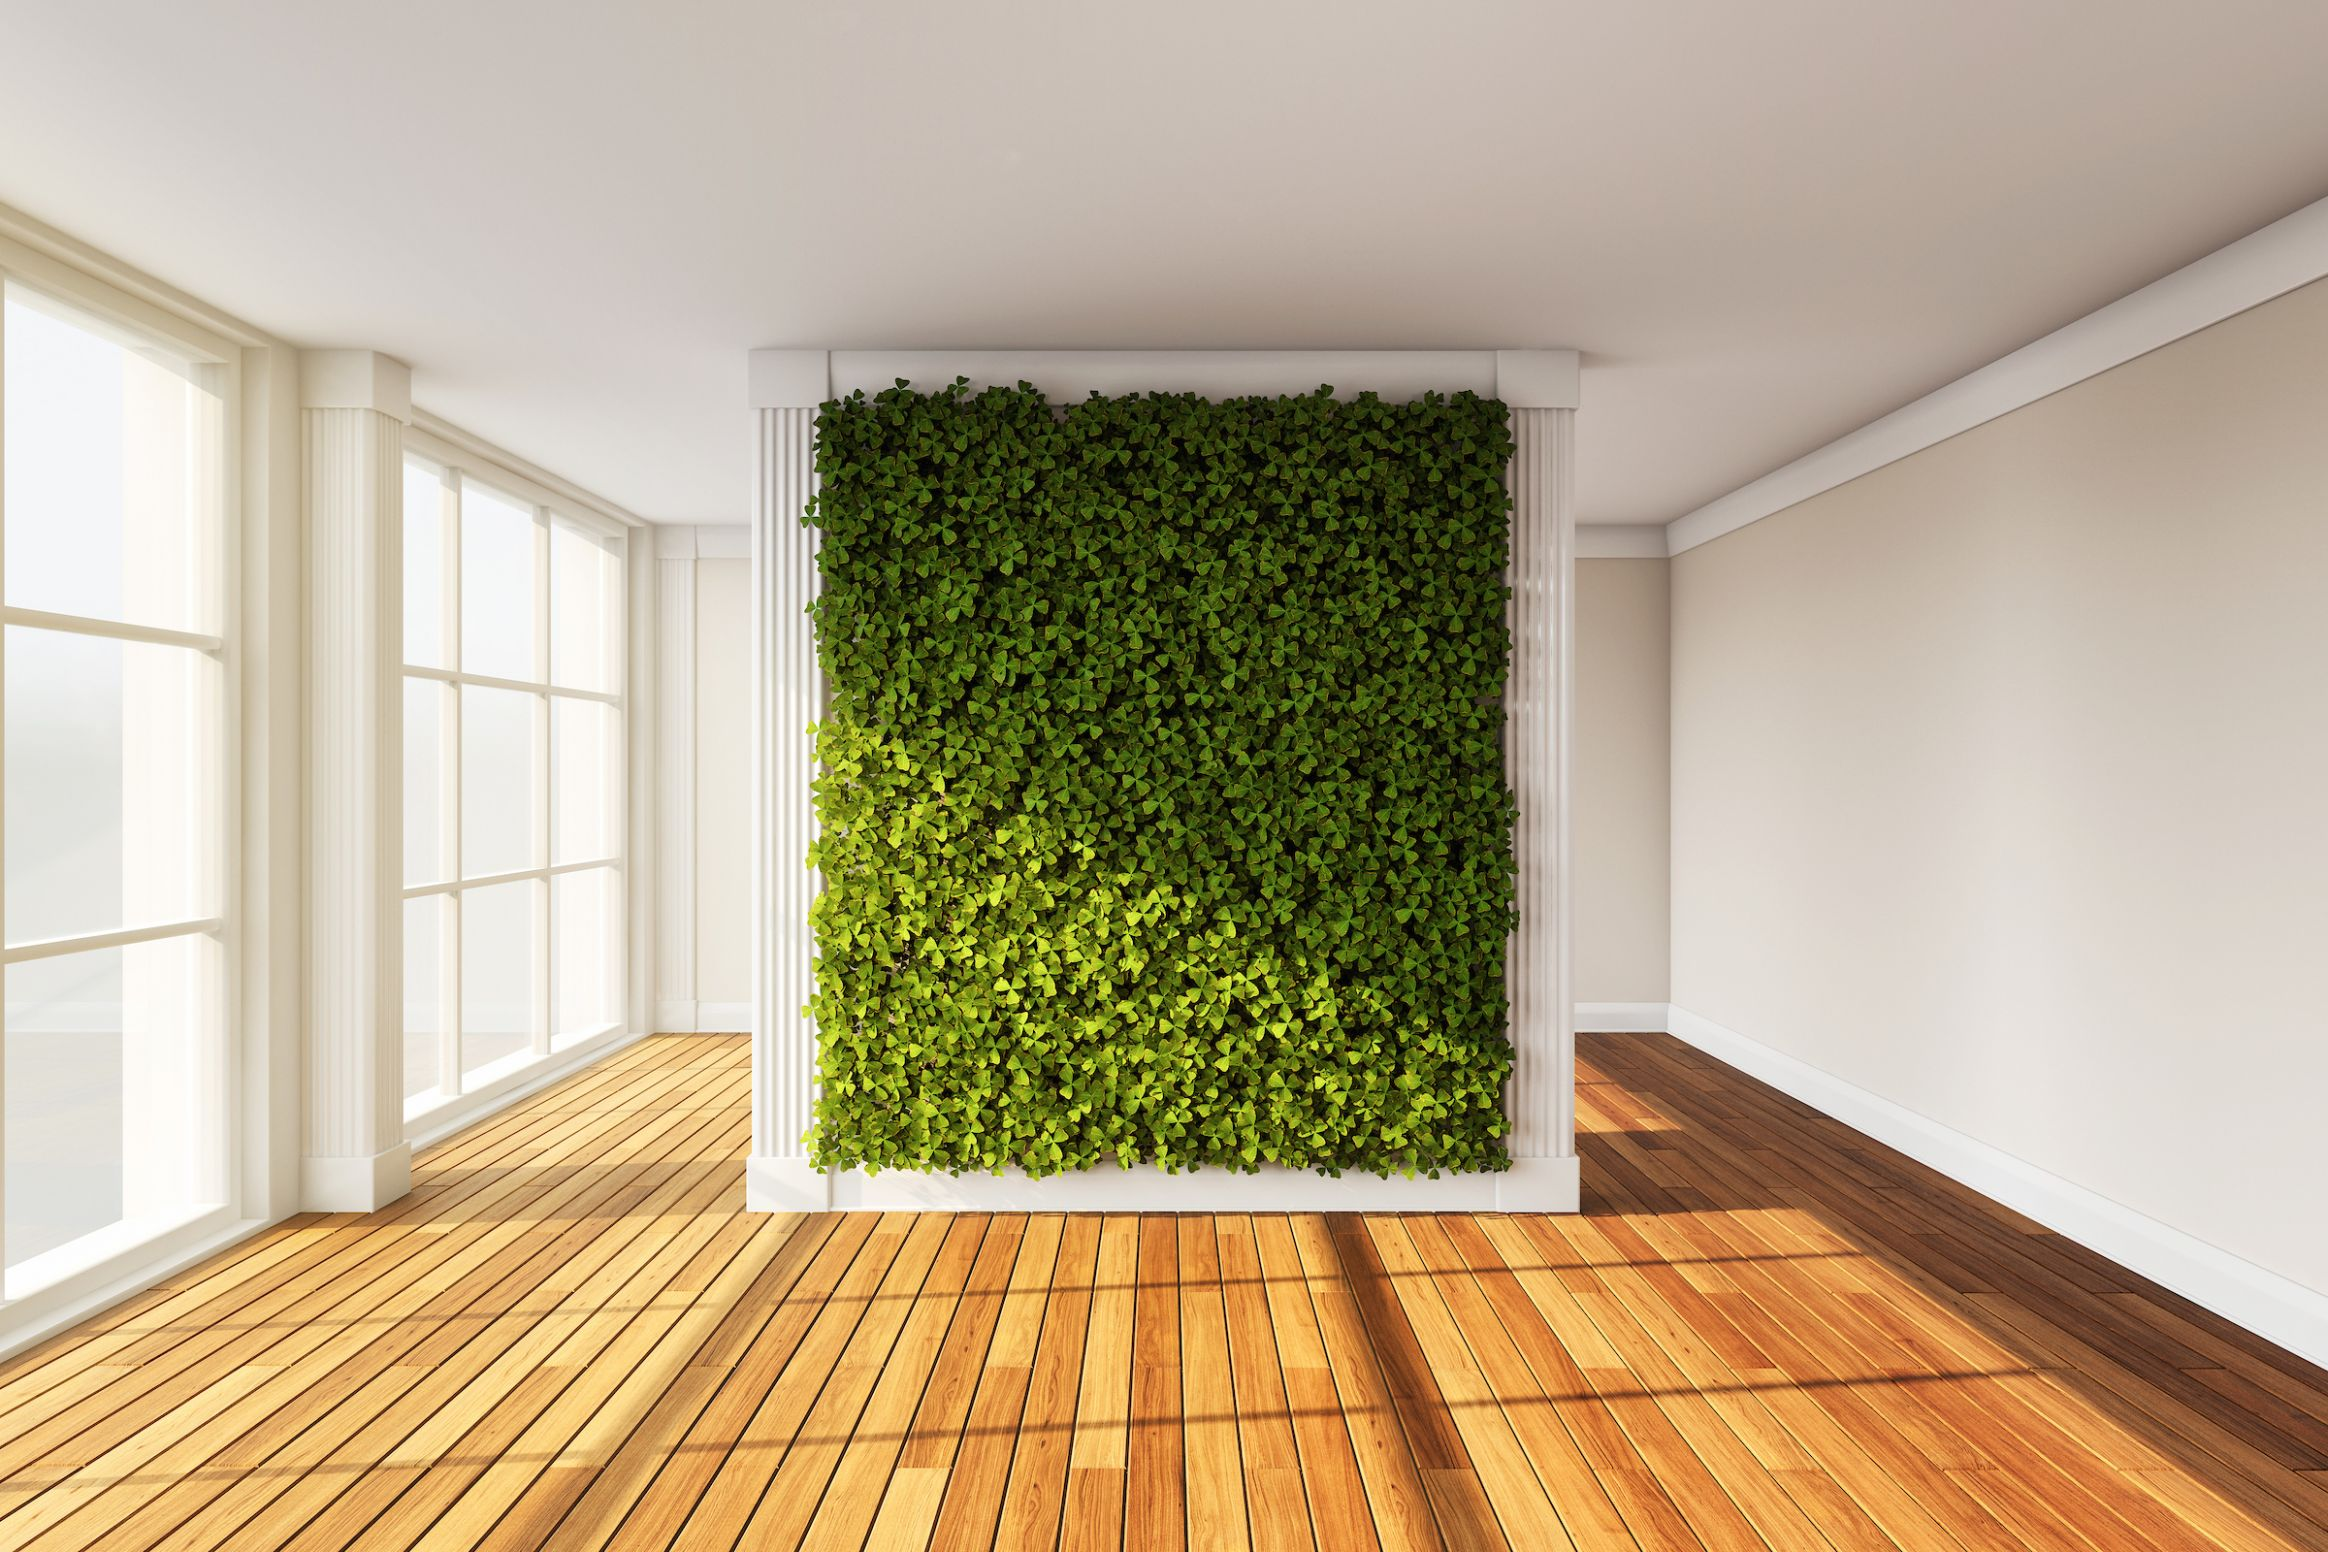 Breathtaking Living Wall Designs for Creating Your Own Vertical ..